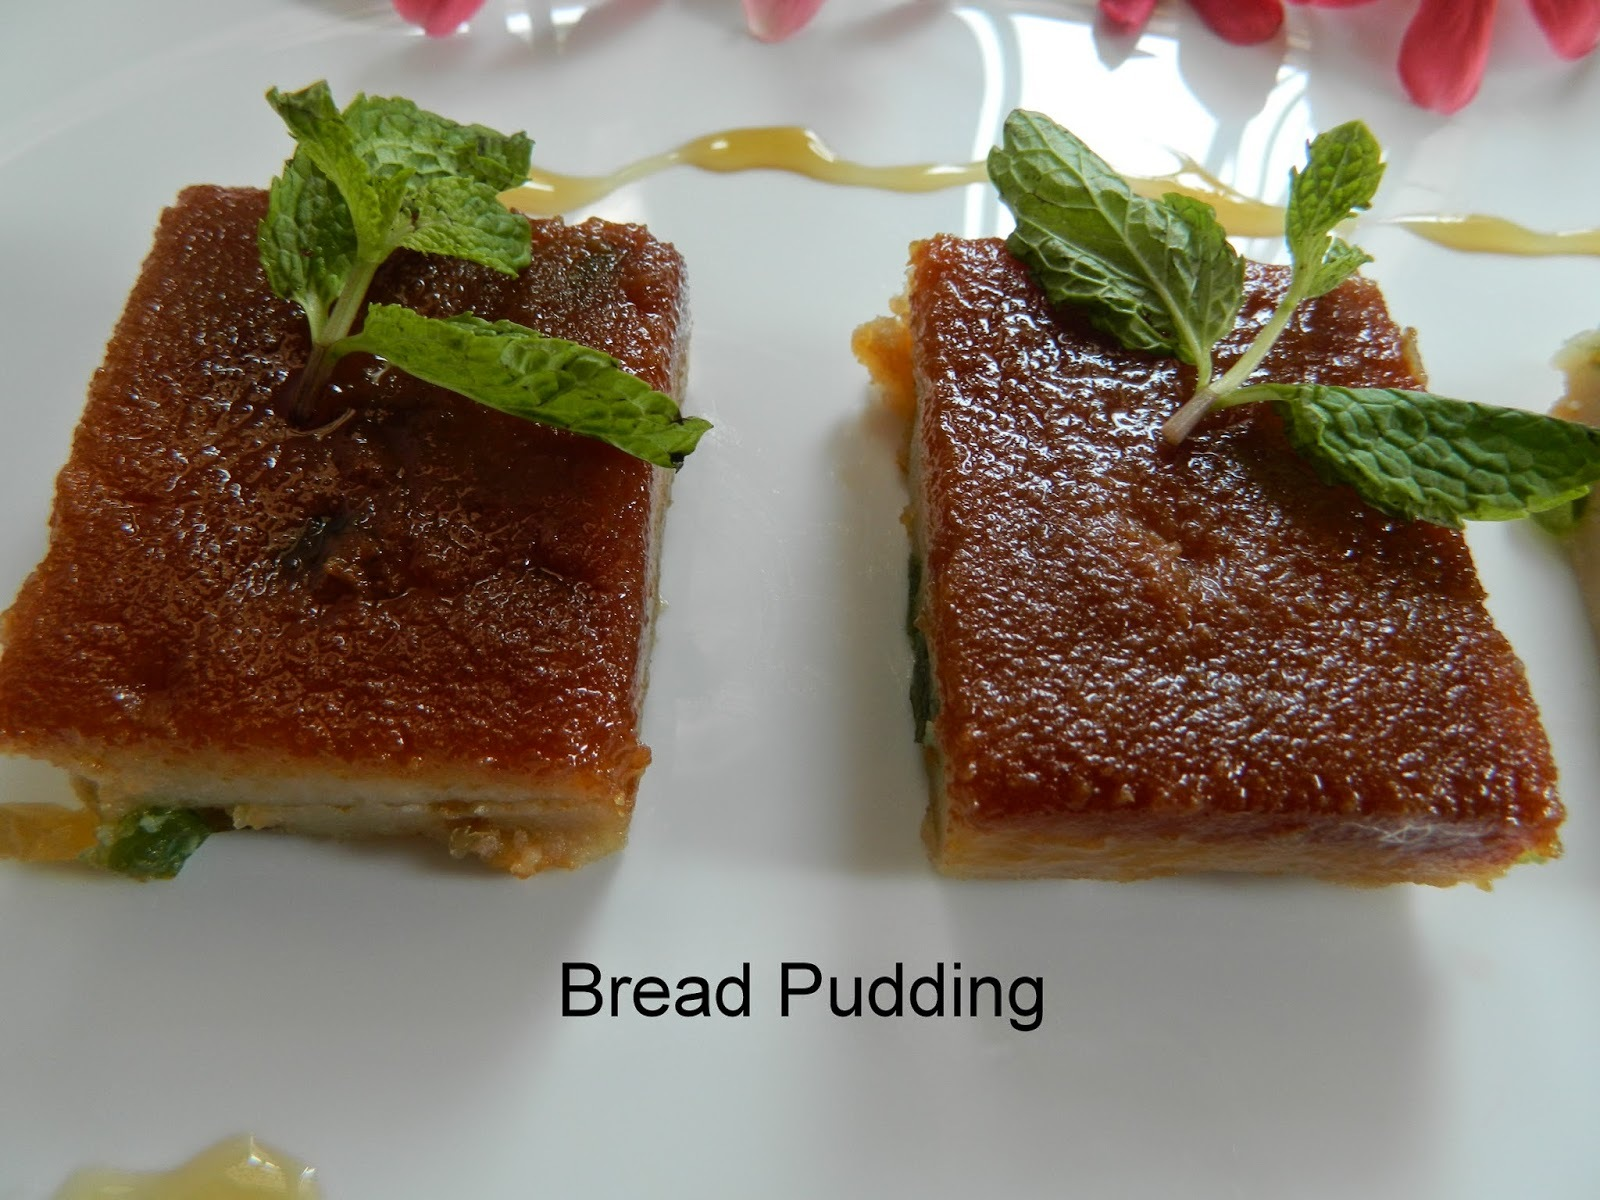 Eggless Caramel Bread pudding